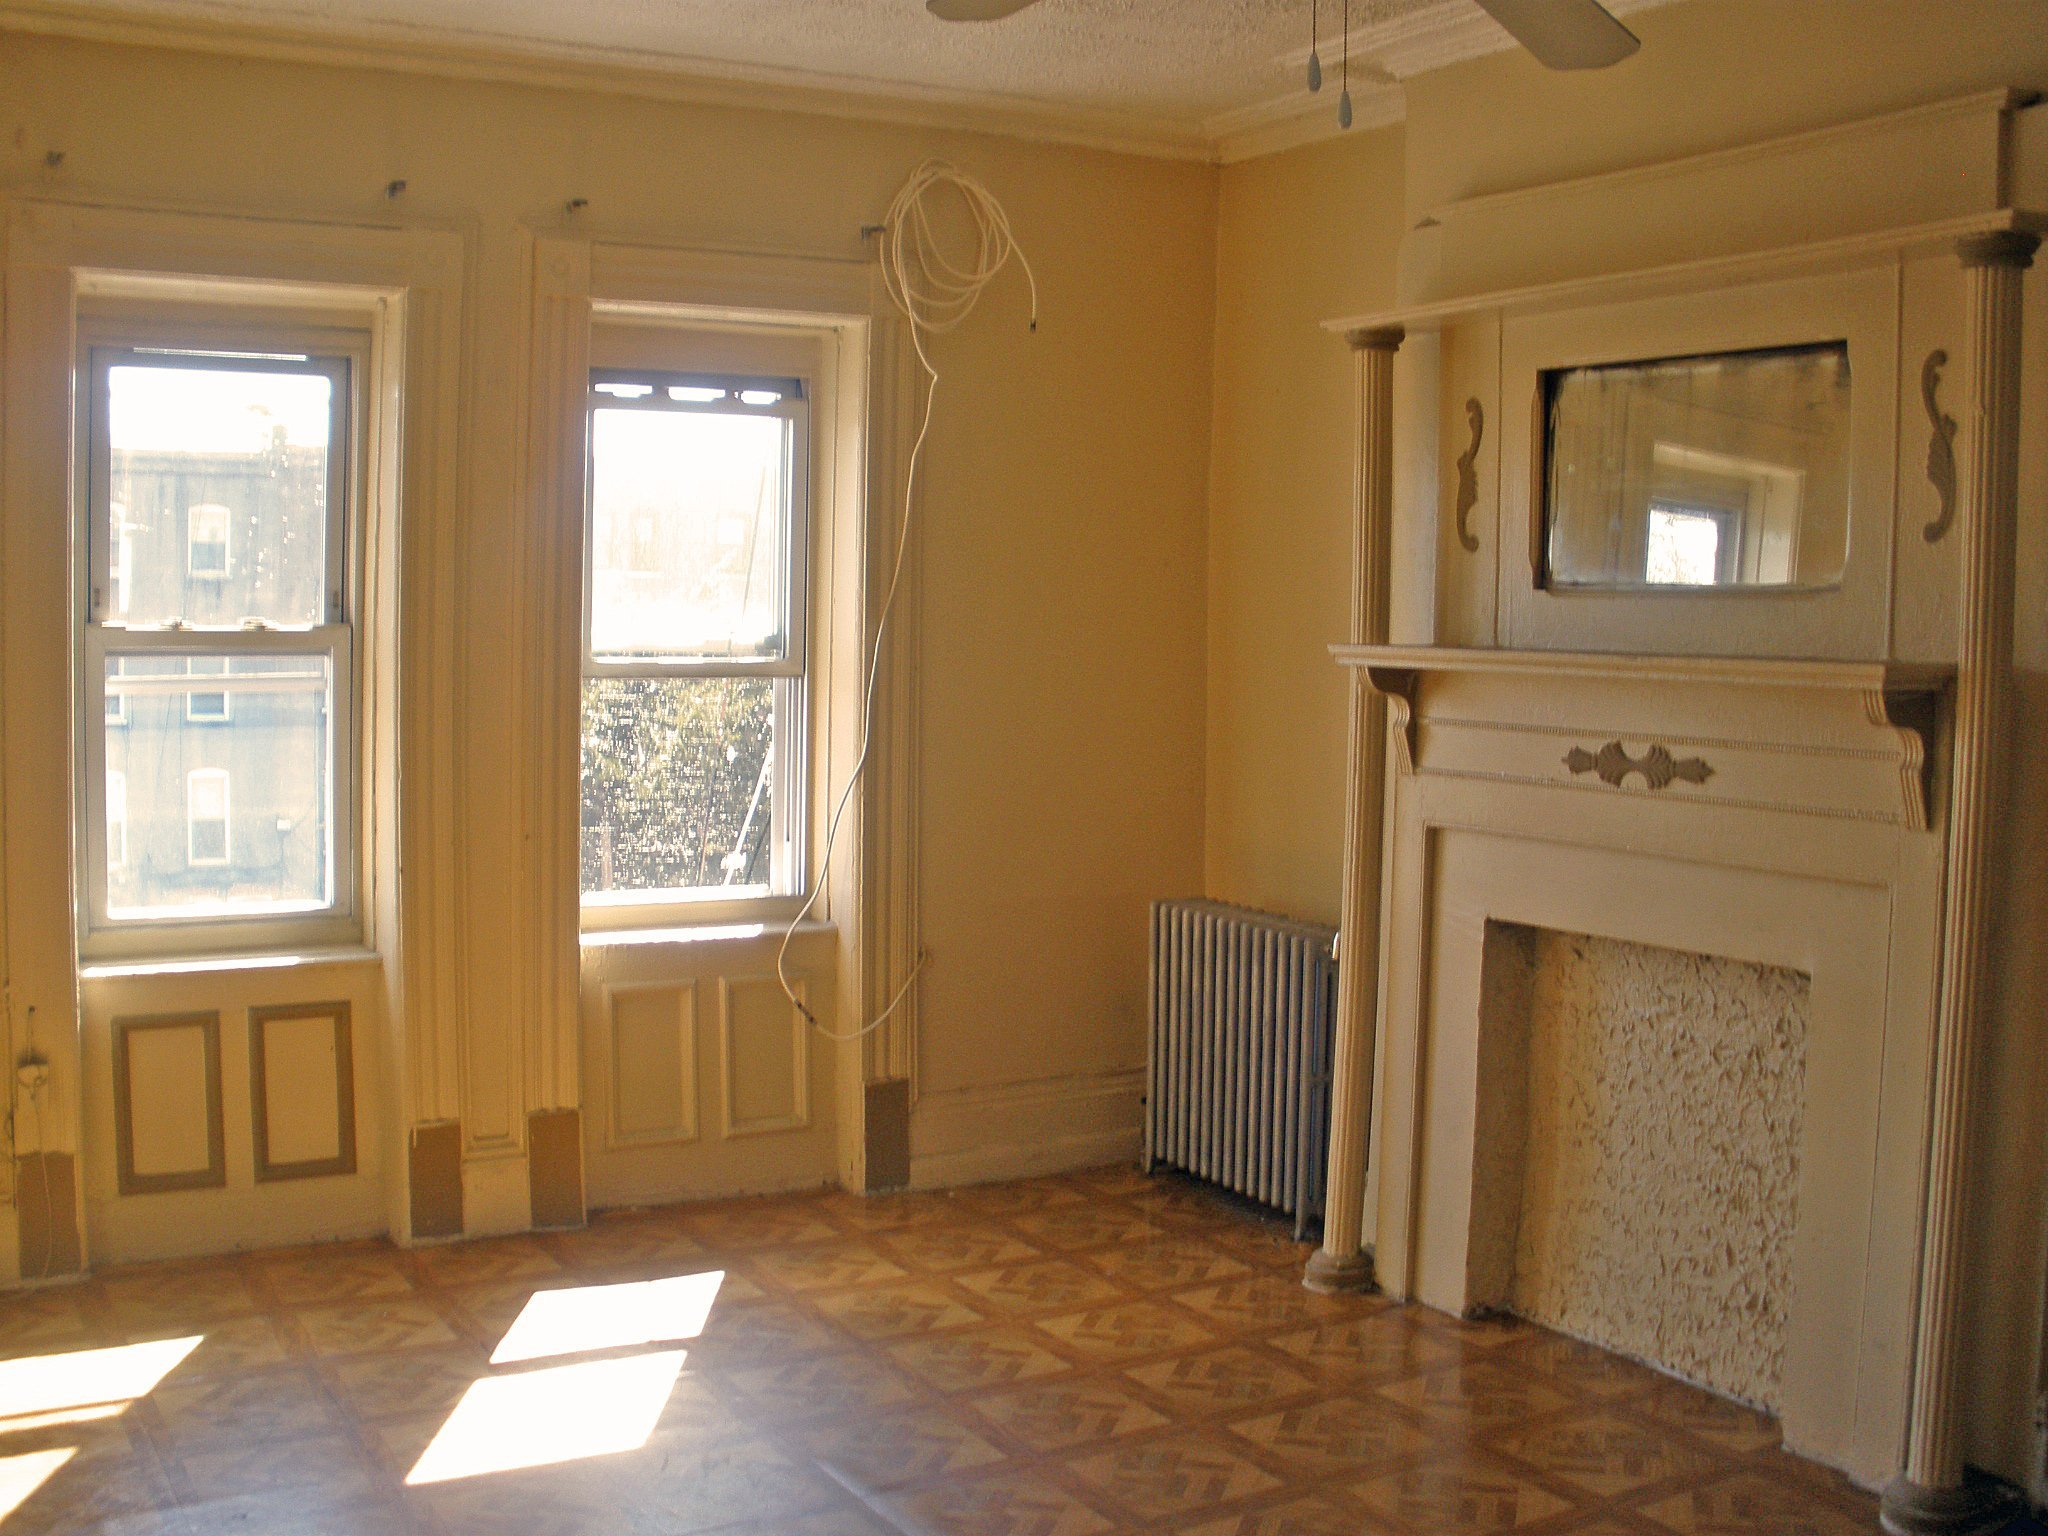 Crown heights 1 bedroom apartment for rent brooklyn crg3020 - Looking for 1 bedroom apartment in brooklyn ...